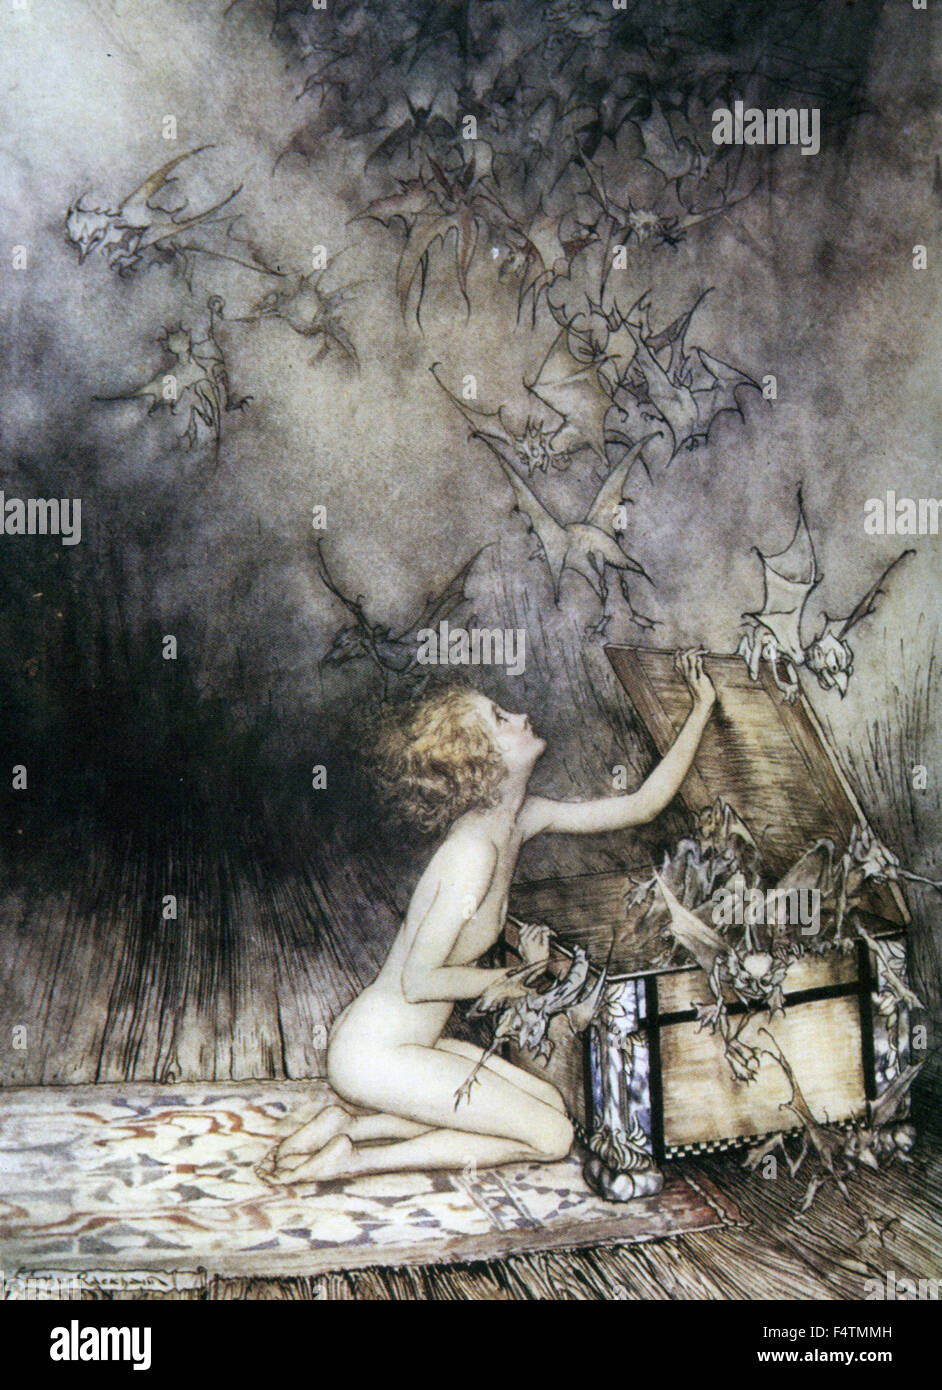 pandora s box stock photos pandora s box stock images alamy arthur rackham 1867 1939 english book illustrator pandora s box releases a horde